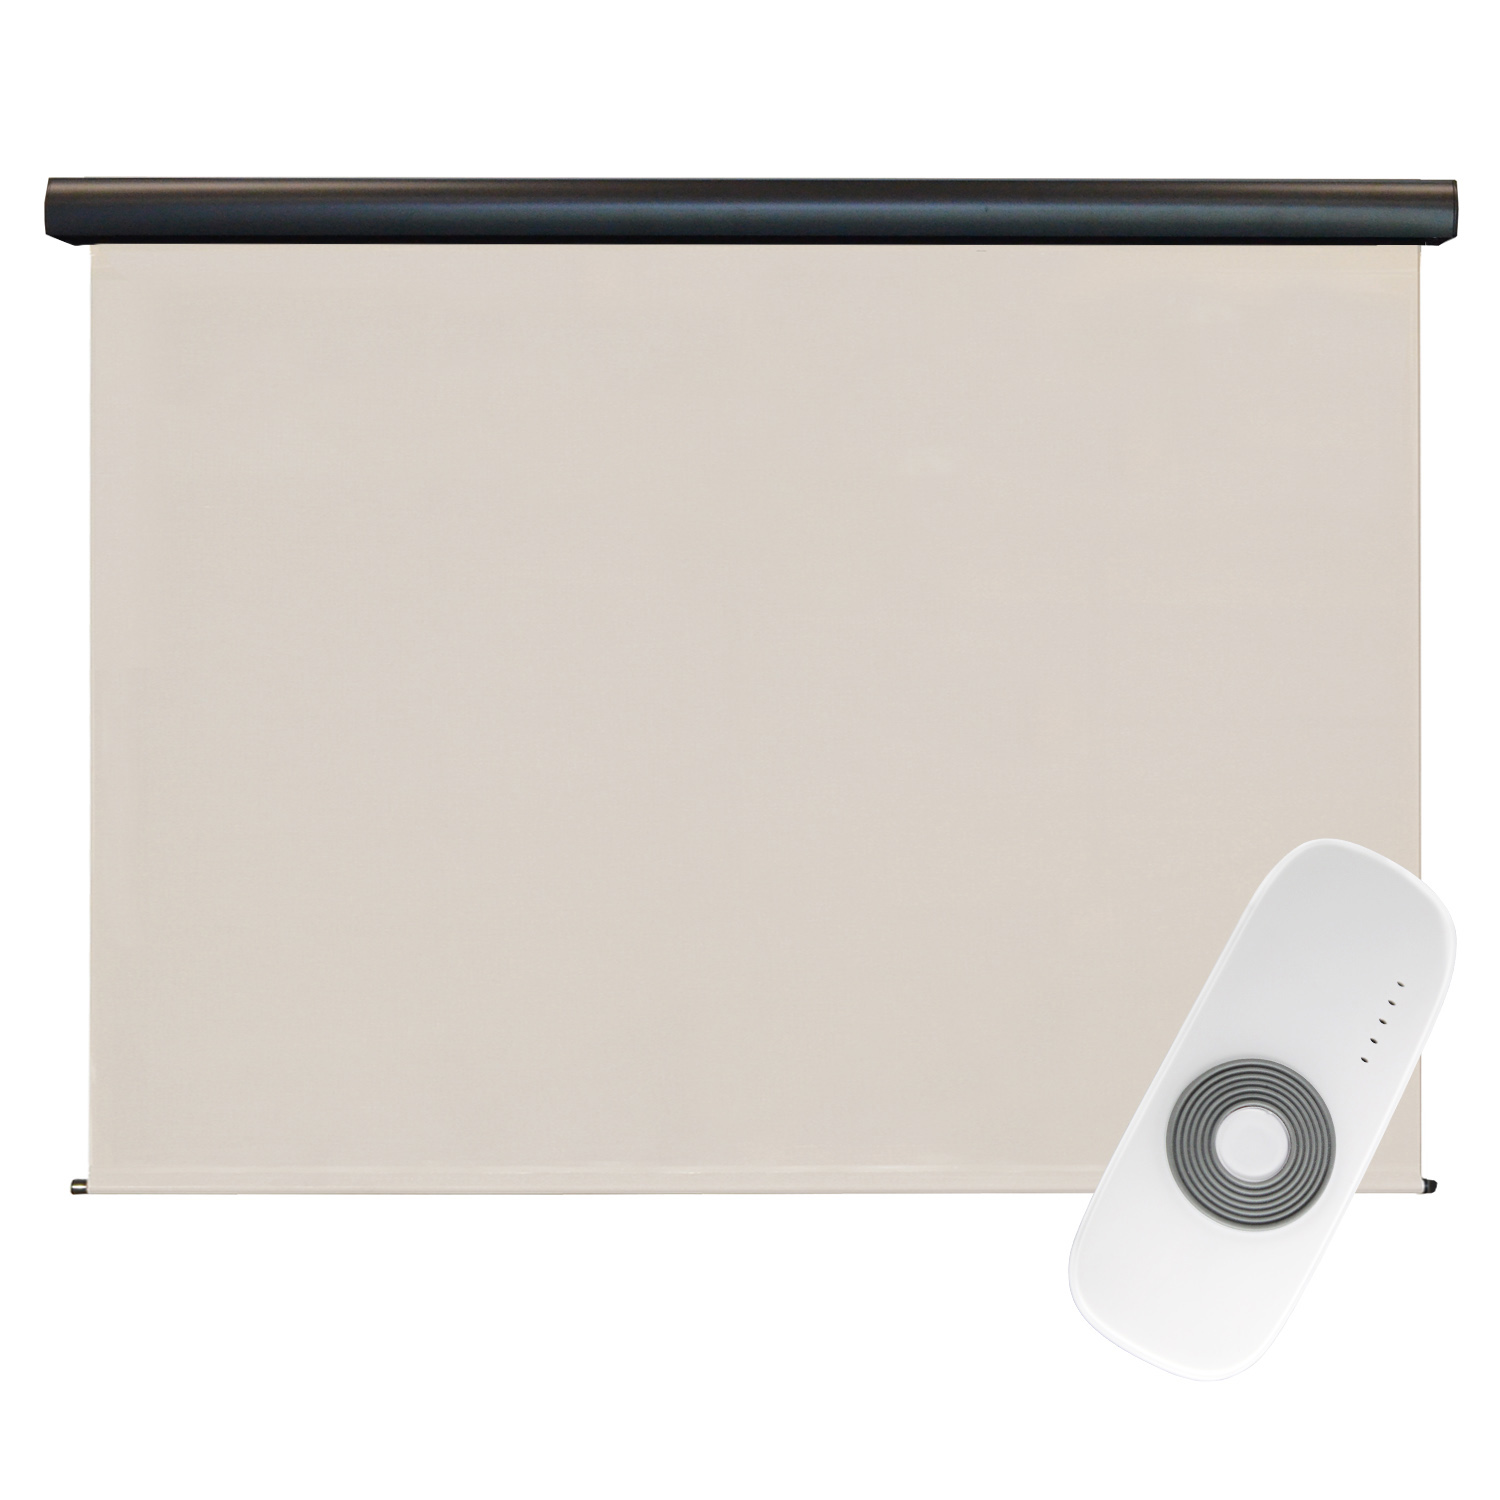 Premier Rechargeable Motorized Outdoor Sun Shade with Protective Valance, 7' W x 8' L, Palm